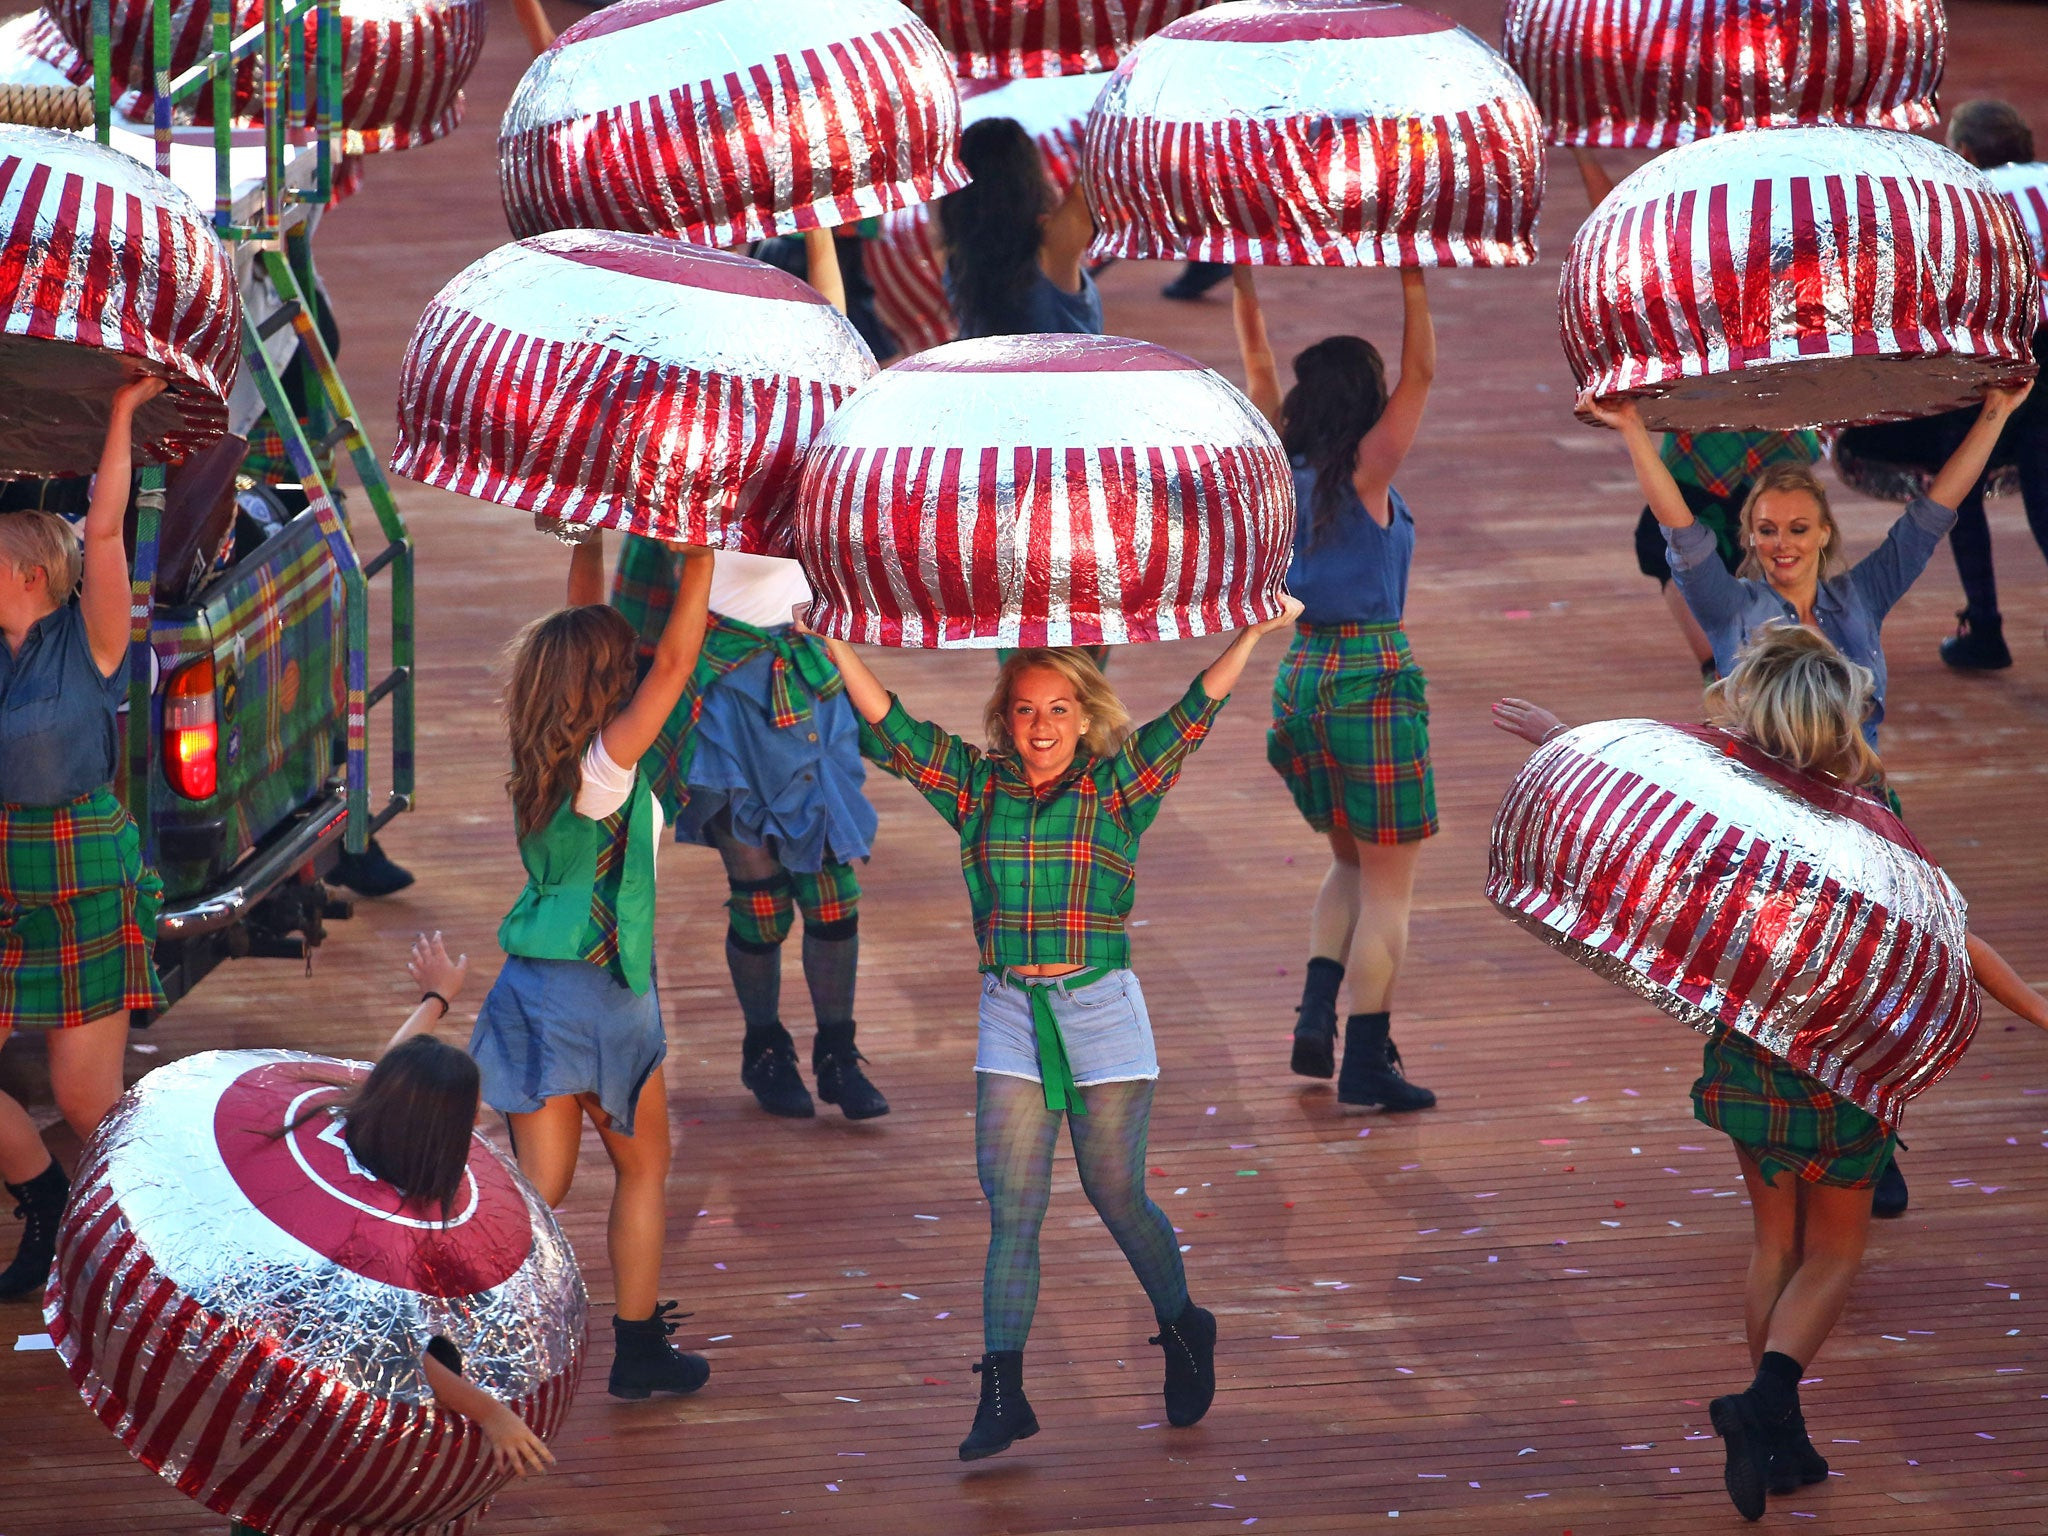 A total of 30 giant Tunnock teacakes played a starring role in the Opening Ceremony at Glasgow 2014 ©Getty Images